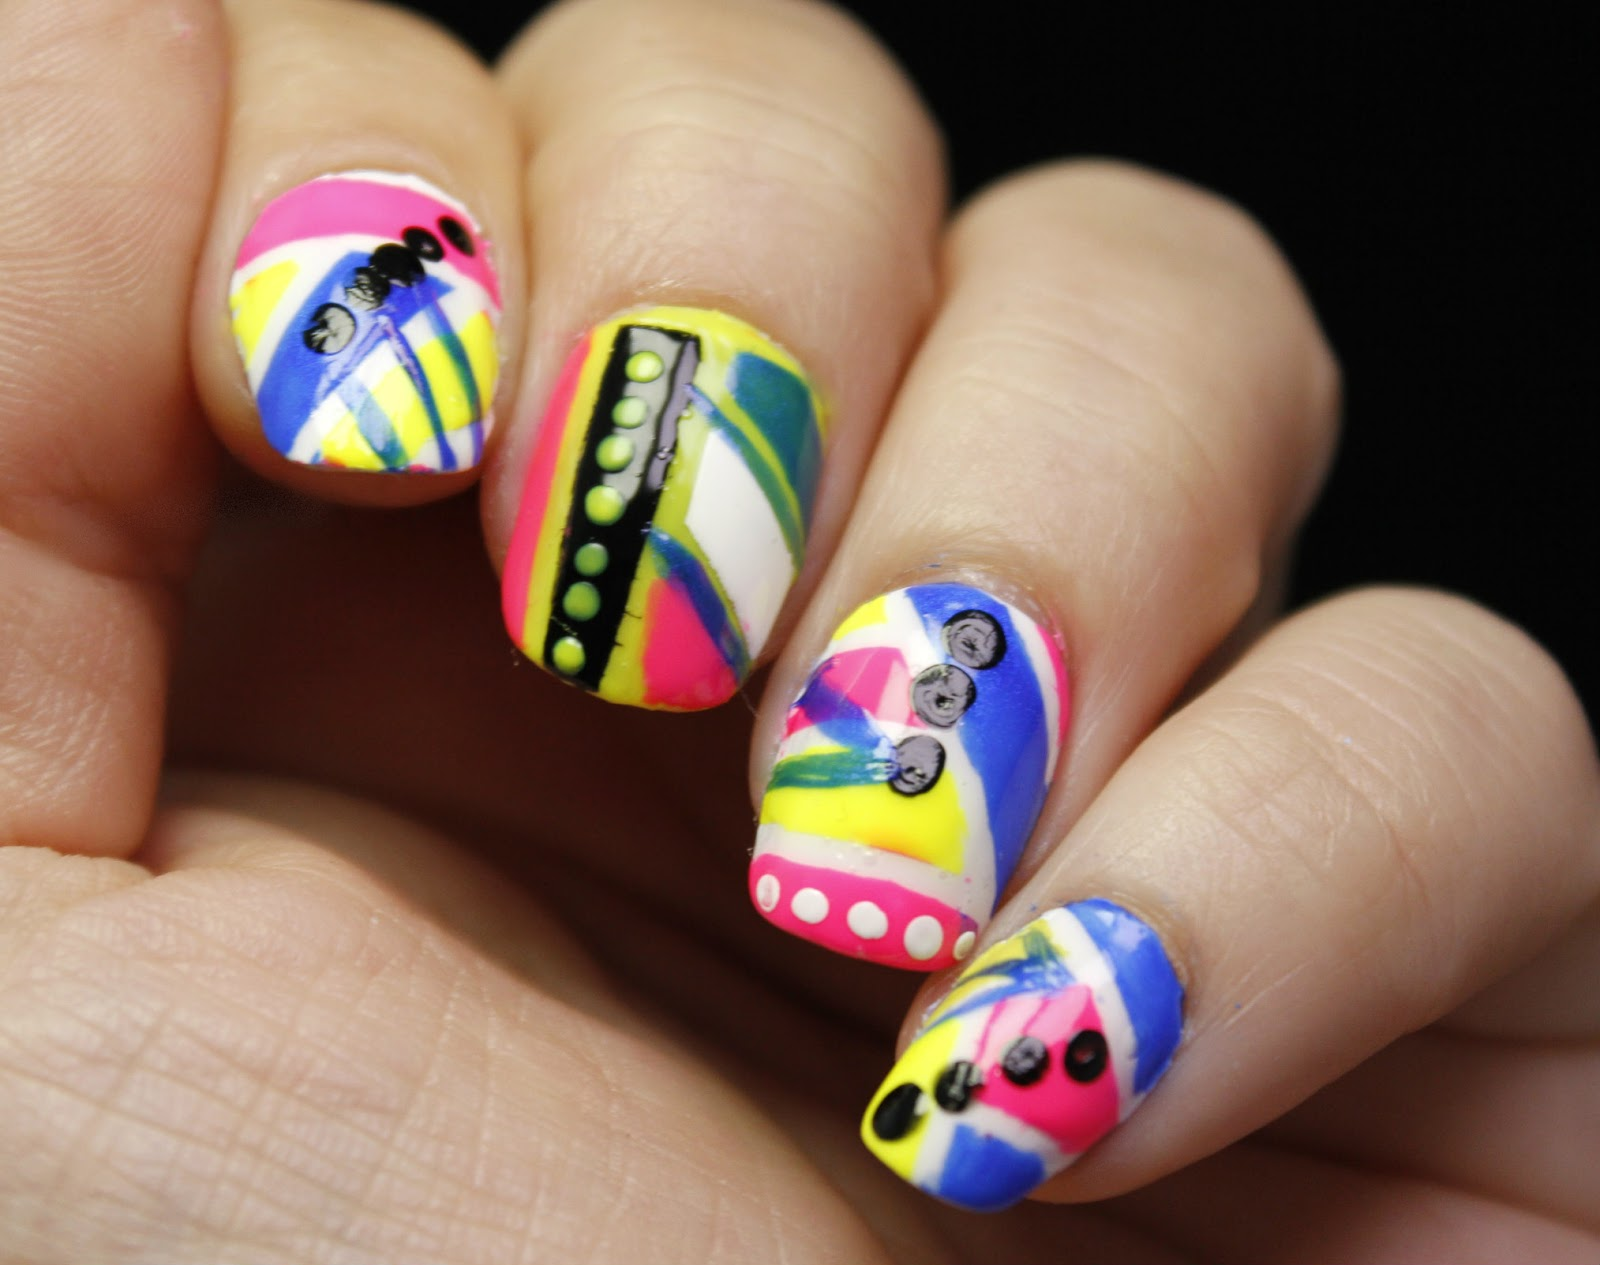 The Nail Challenge Collaborative Presents The 80s,Jewellery Designing App